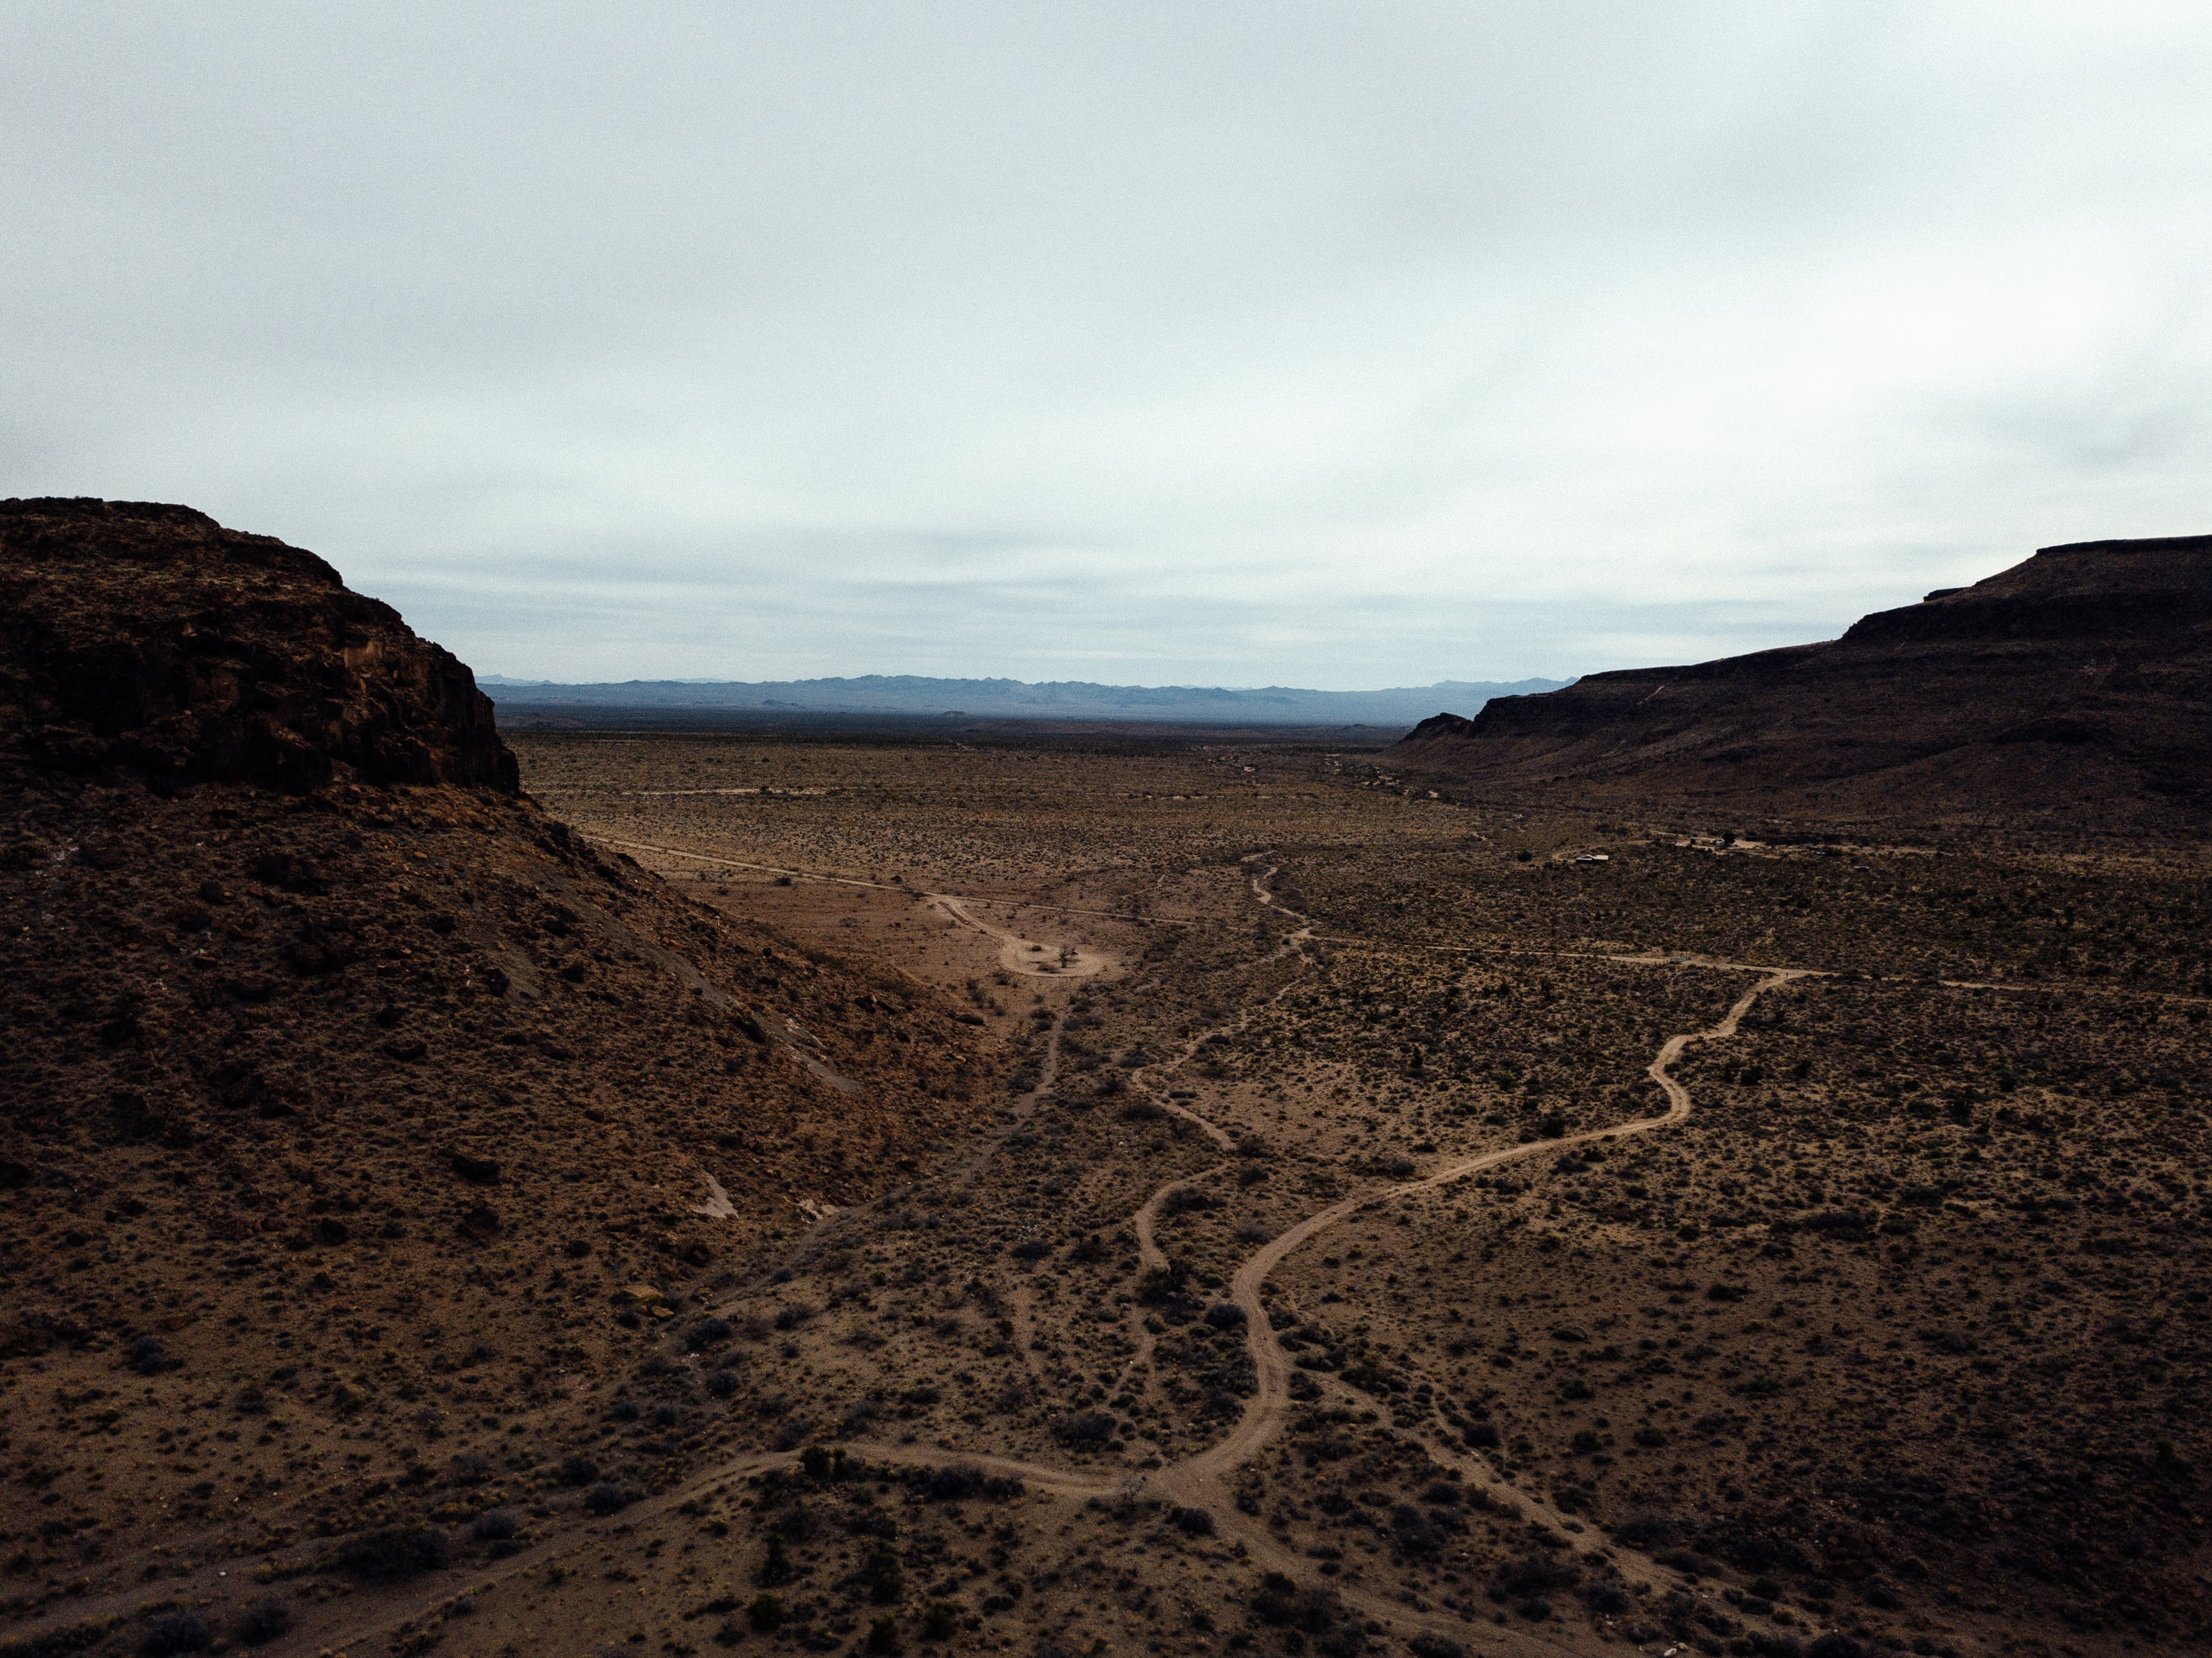 aerial photography of desert mountains during daytime